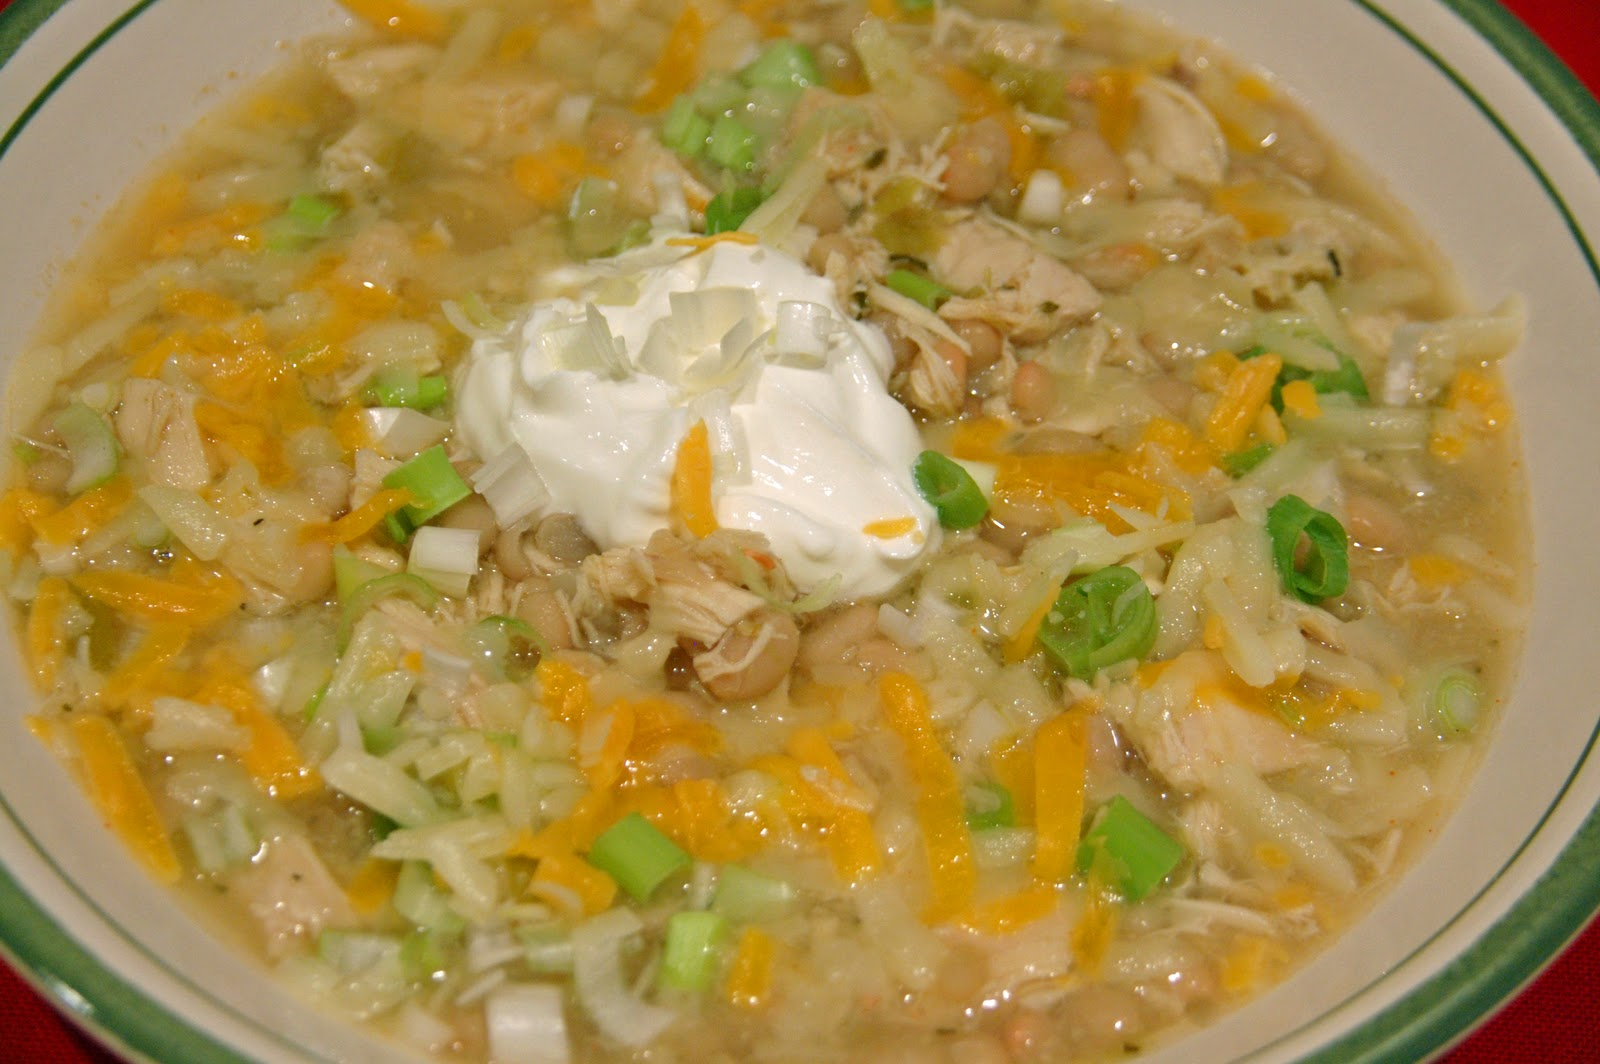 Southern Lady's Recipes: White Chili